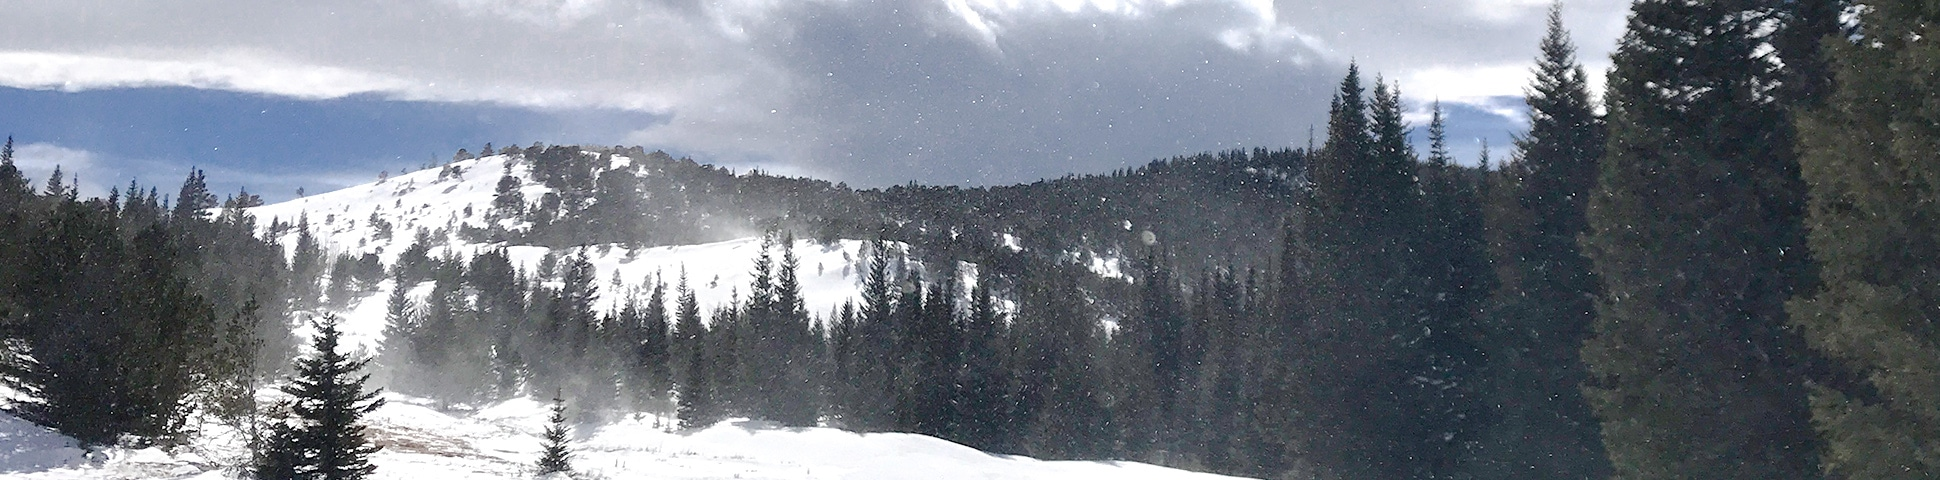 Panorama of Caribou Hill snowshoe trail in Indian Peaks, Colorado